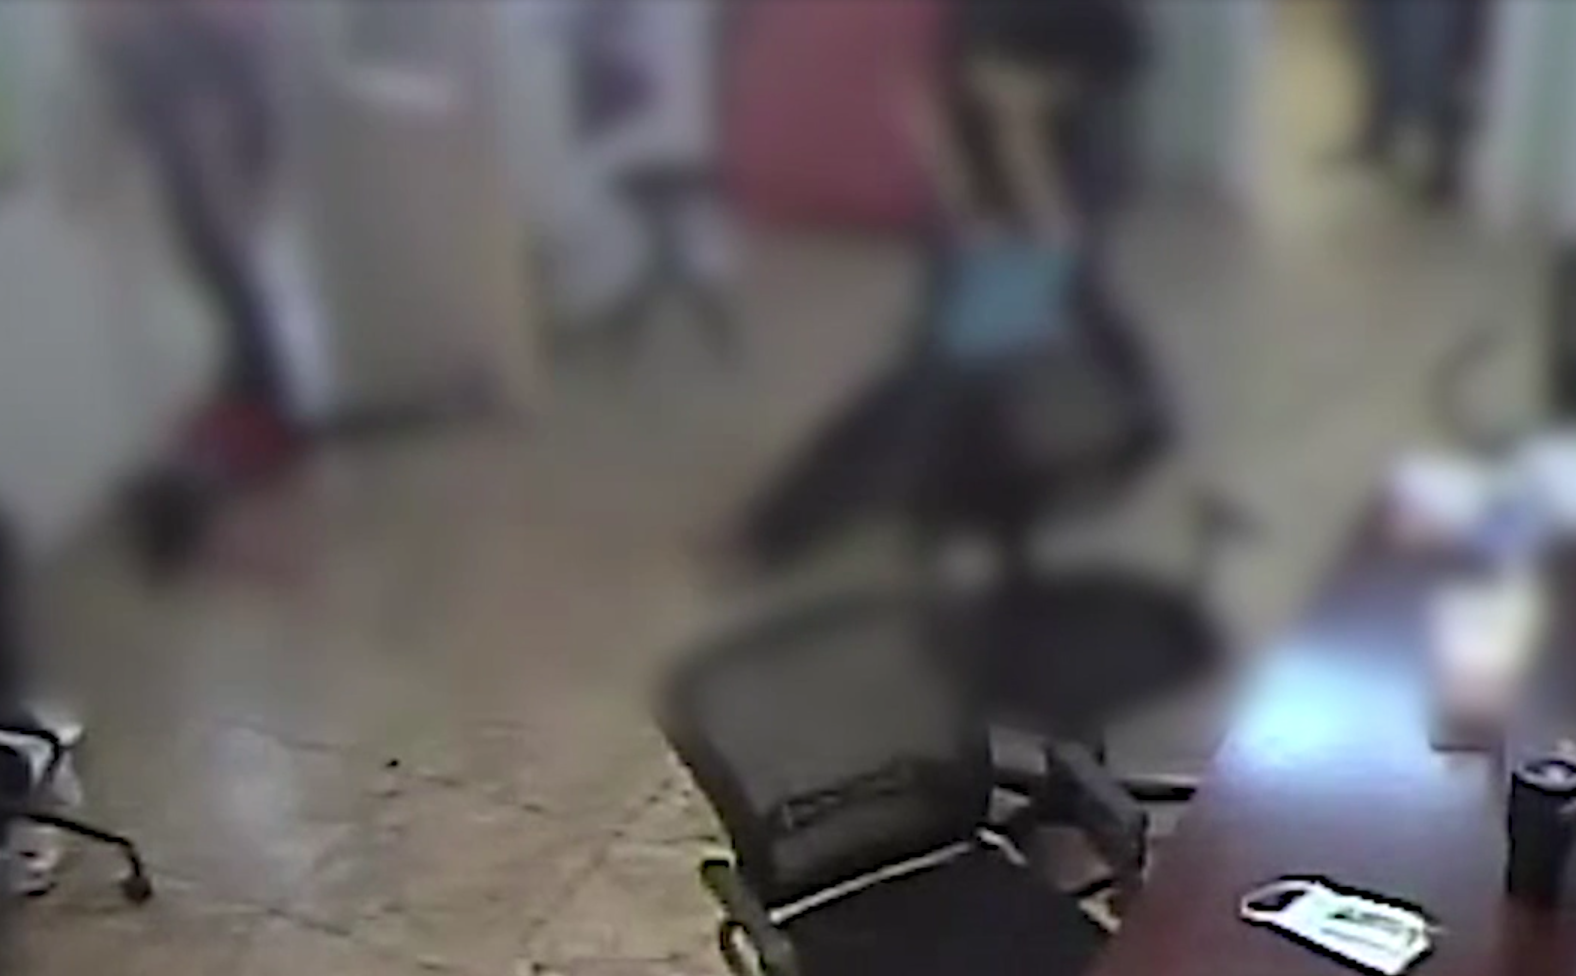 A blurred still from a video obtained by the Arizona Republicthrough an open records request shows a Southwest Key shelter staffer apparently dragging a migrant child.